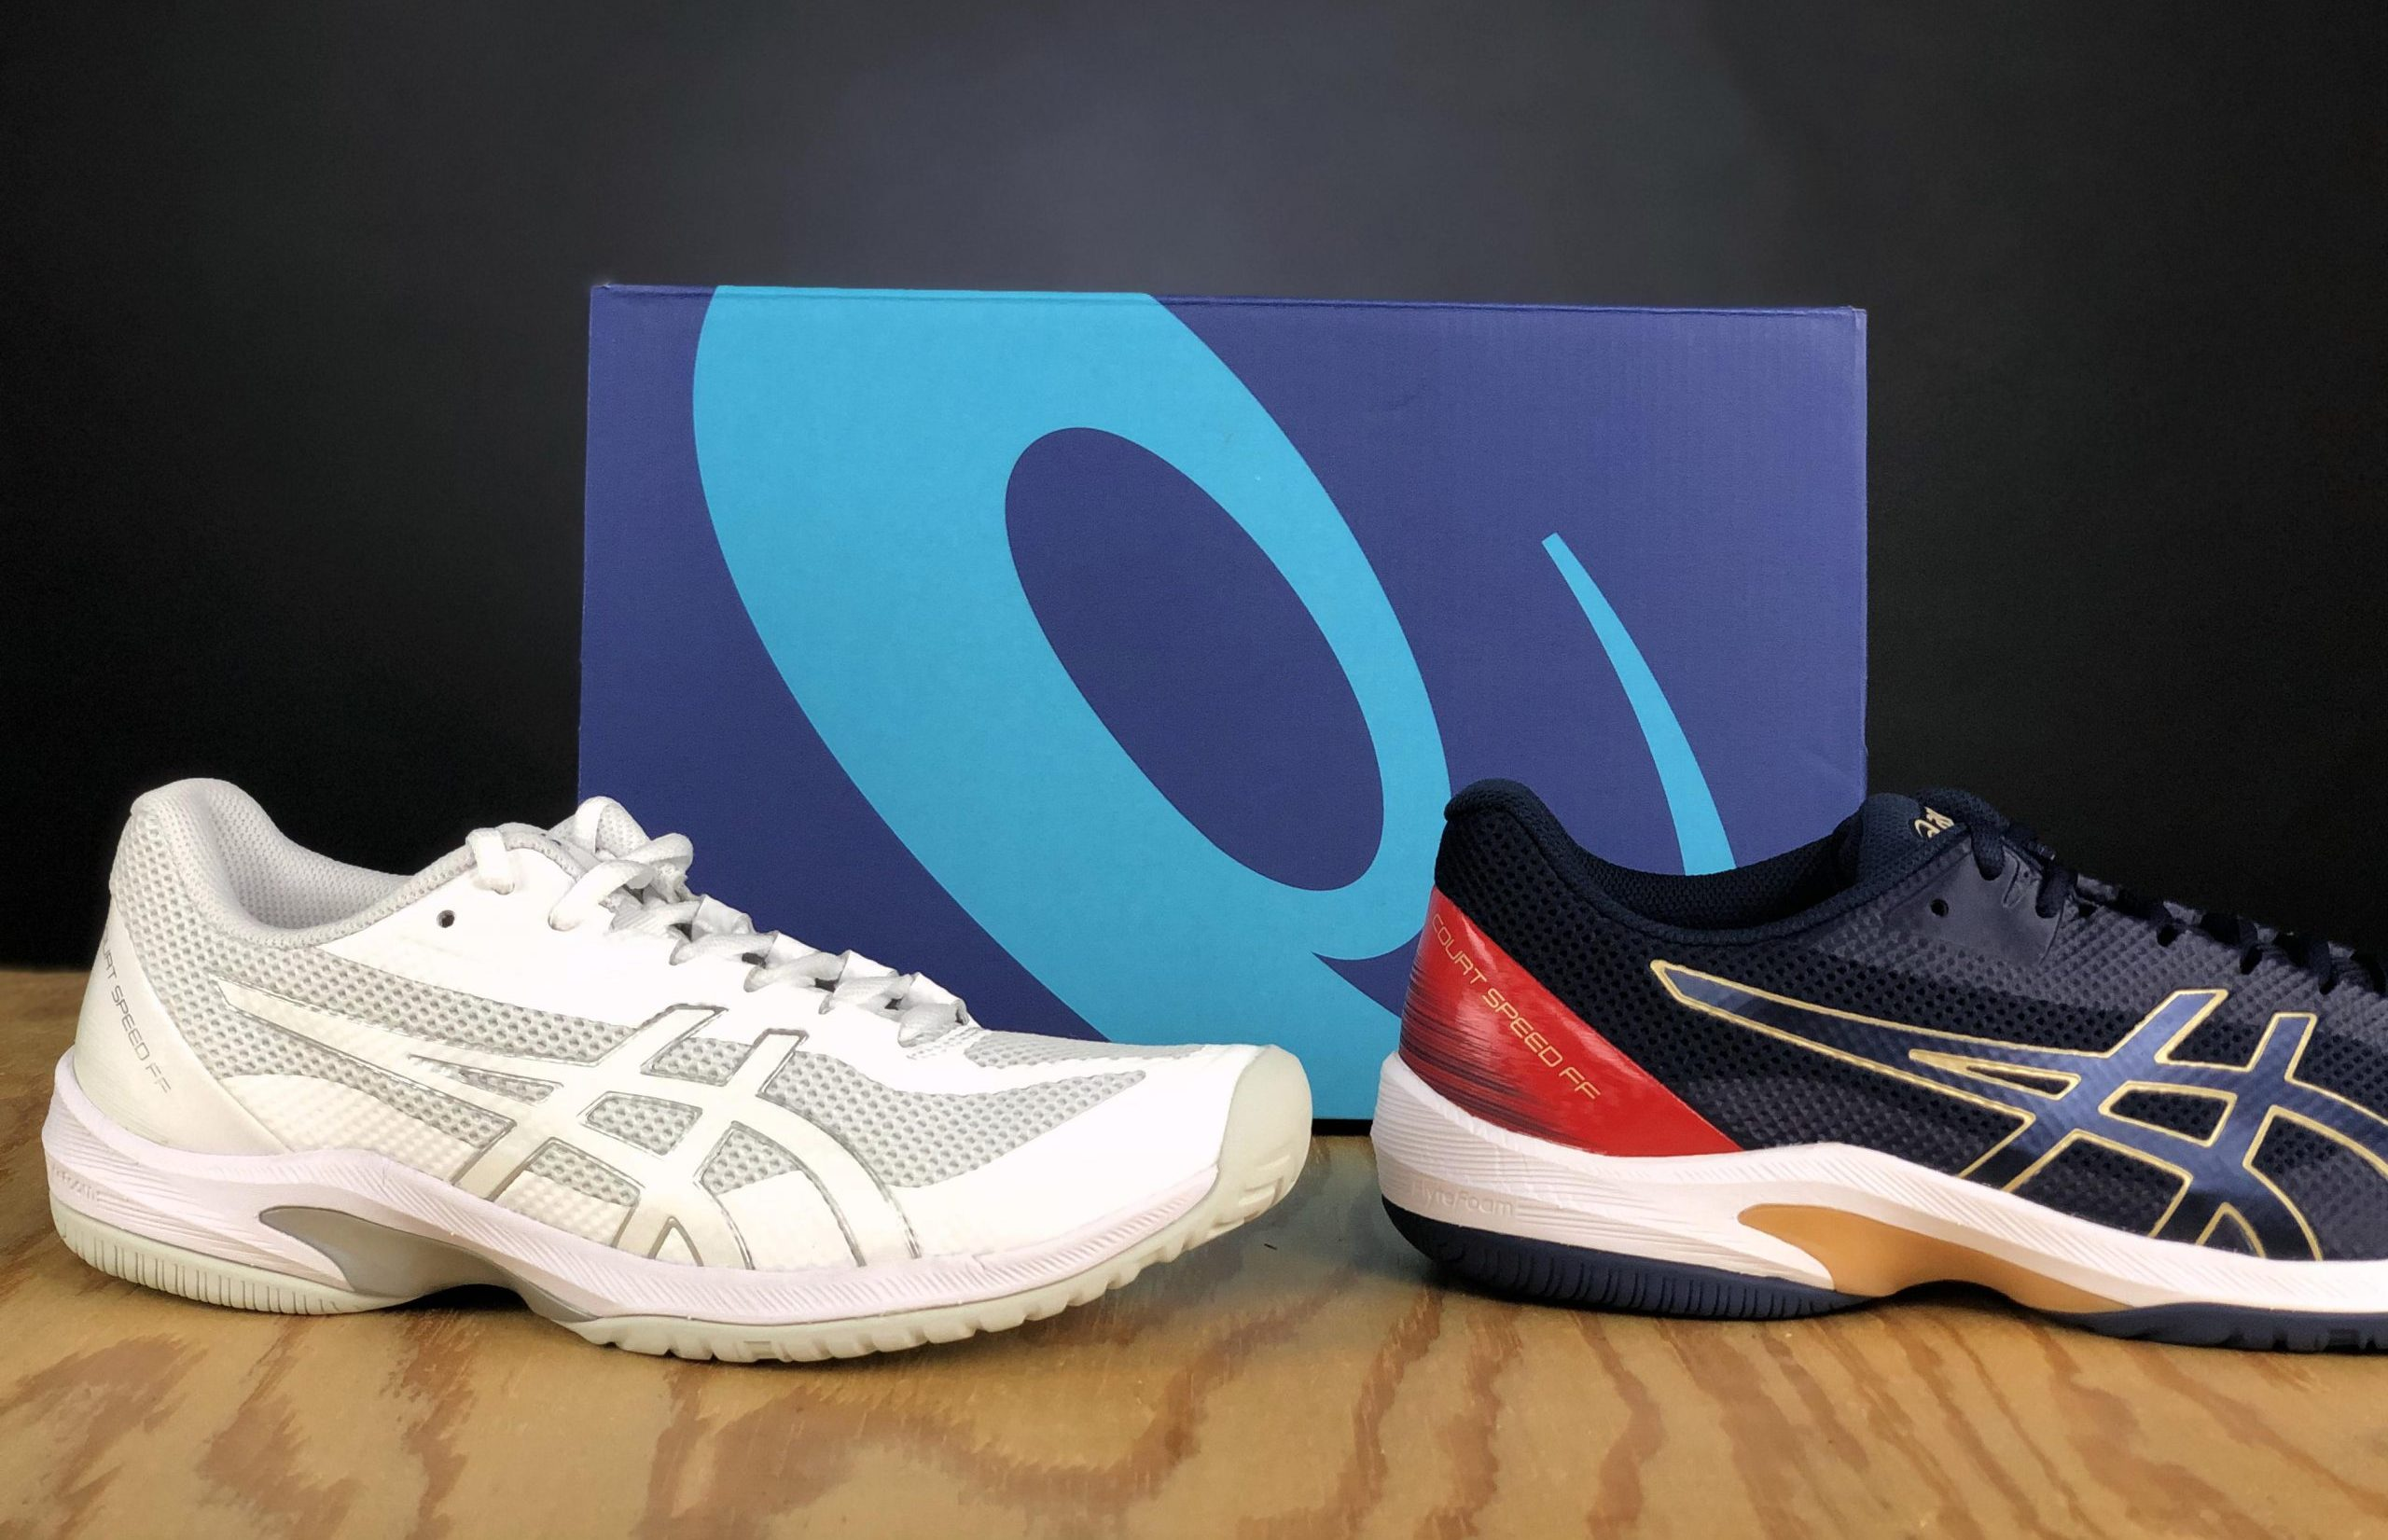 ASICS' Court Speed Line Gets FlyteFoam